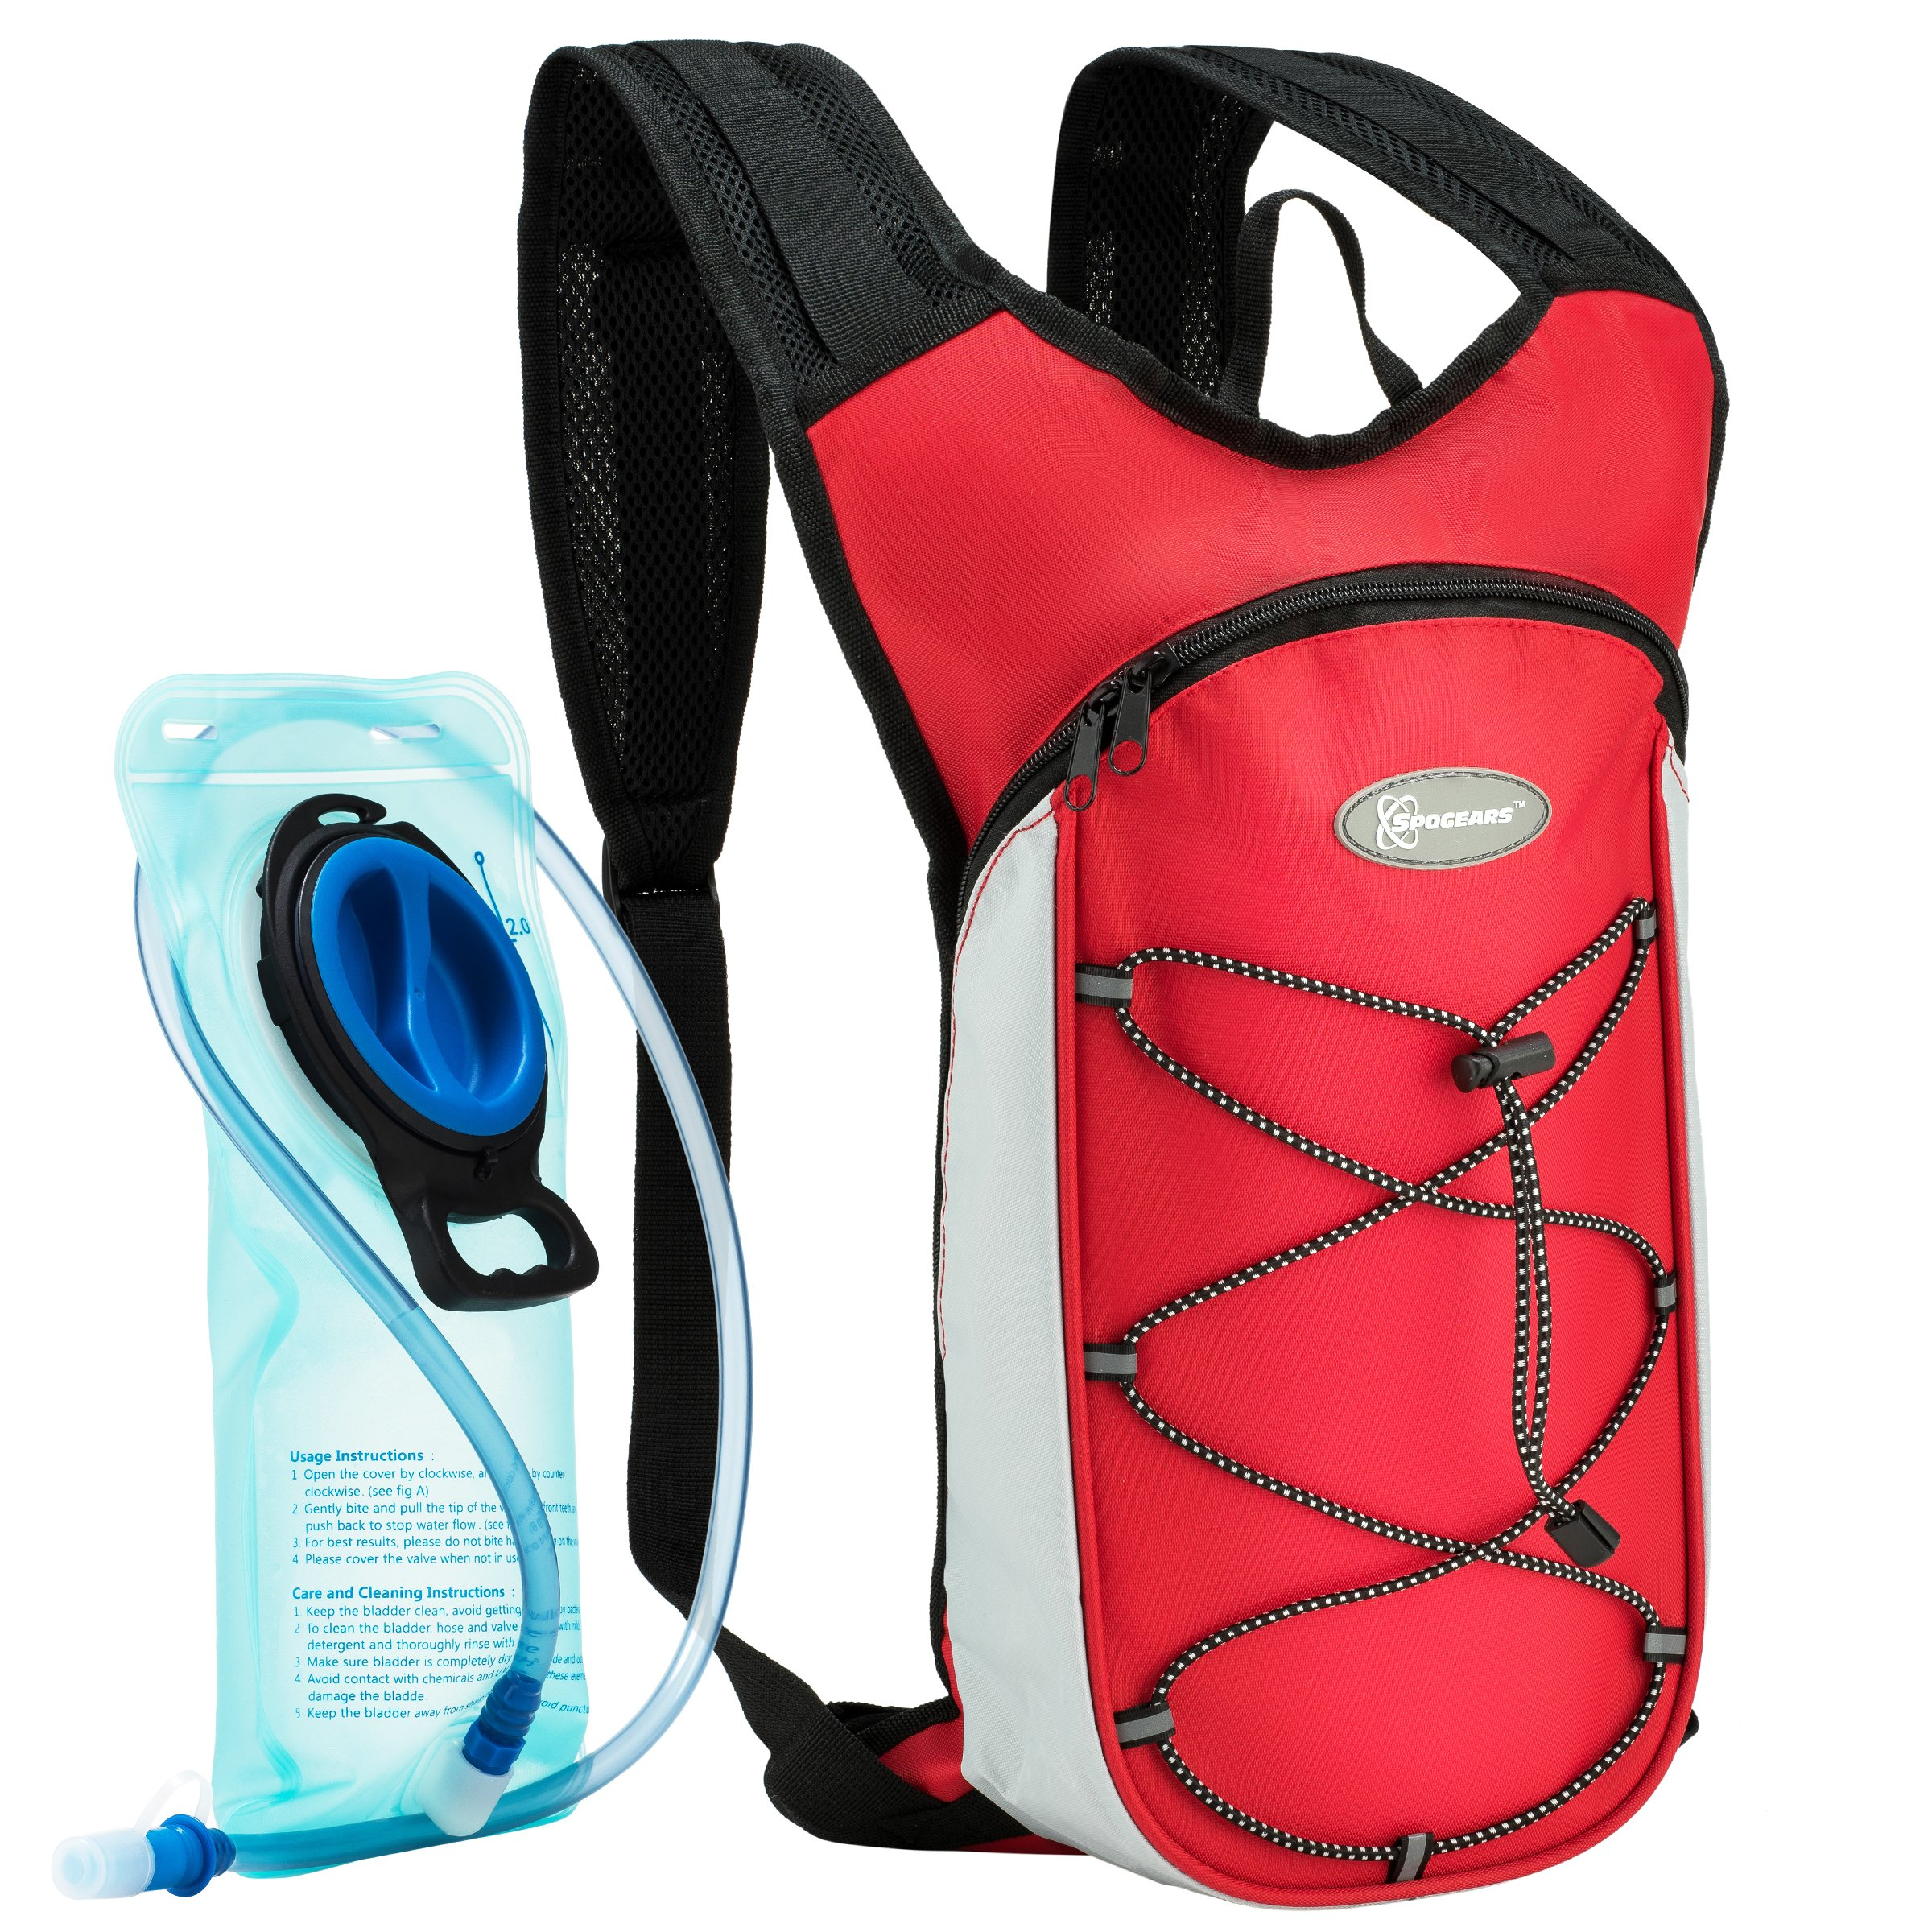 SPOGEARS Hydration Backpack by, The Hydration Pack Includes 2L Leak Proof Water Bladder, On & Off Valve, Separate Pocket for the Bladder, Adjustable Padded Shoulder Straps, Perfect Sports Gear by SPOGEARS